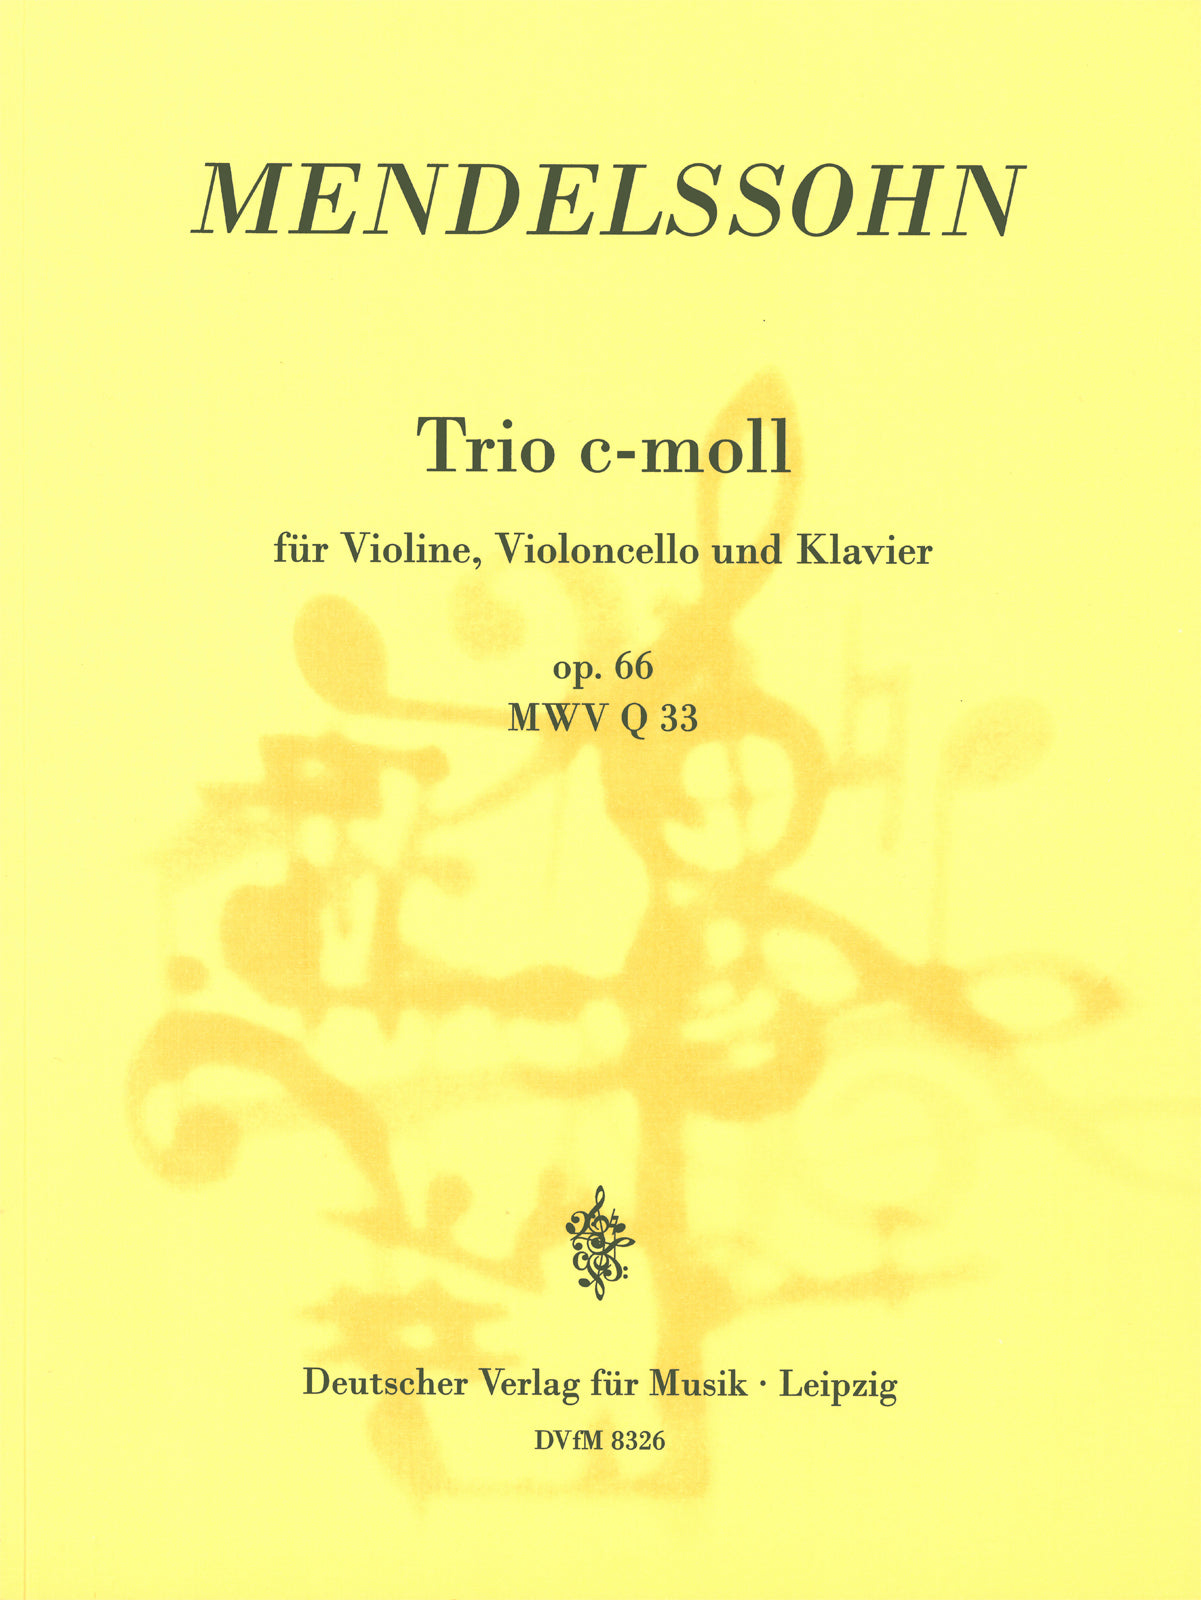 Mendelssohn: Piano Trio No. 2 in C Minor, Op. 66